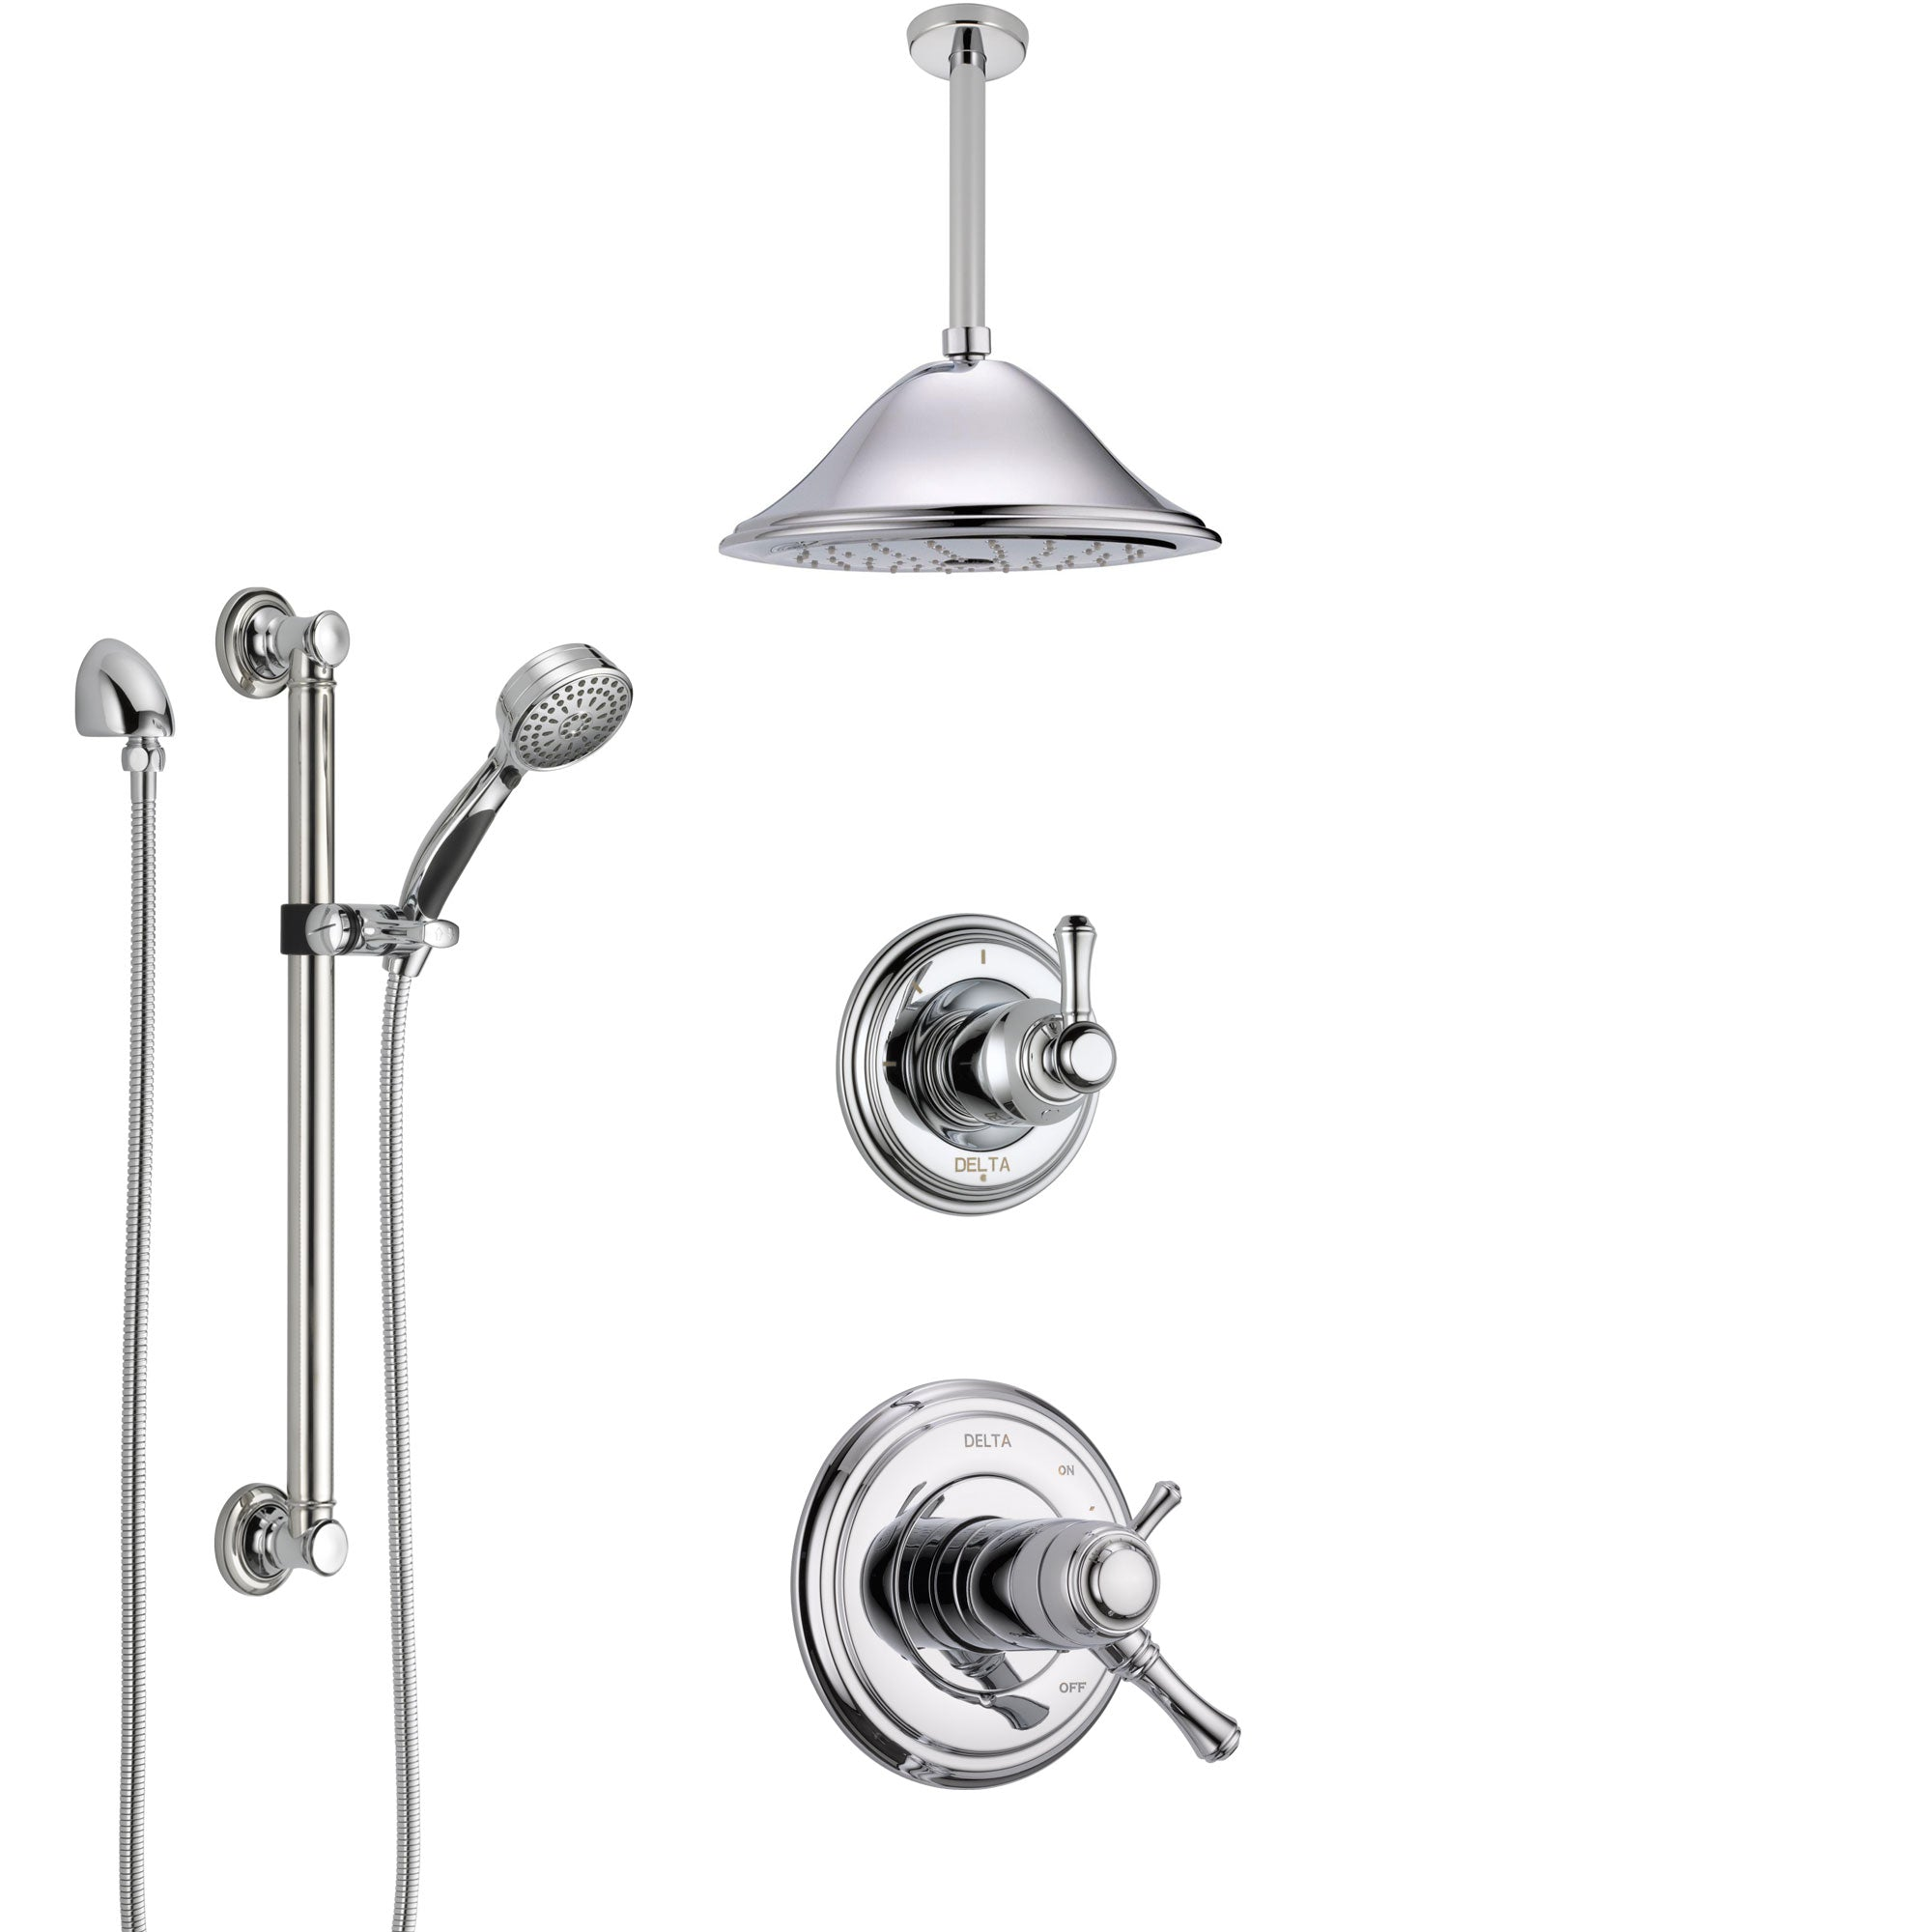 Delta Cassidy Chrome Shower System with Dual Thermostatic Control Handle, Diverter, Ceiling Mount Showerhead, and Hand Shower with Grab Bar SS17T9723